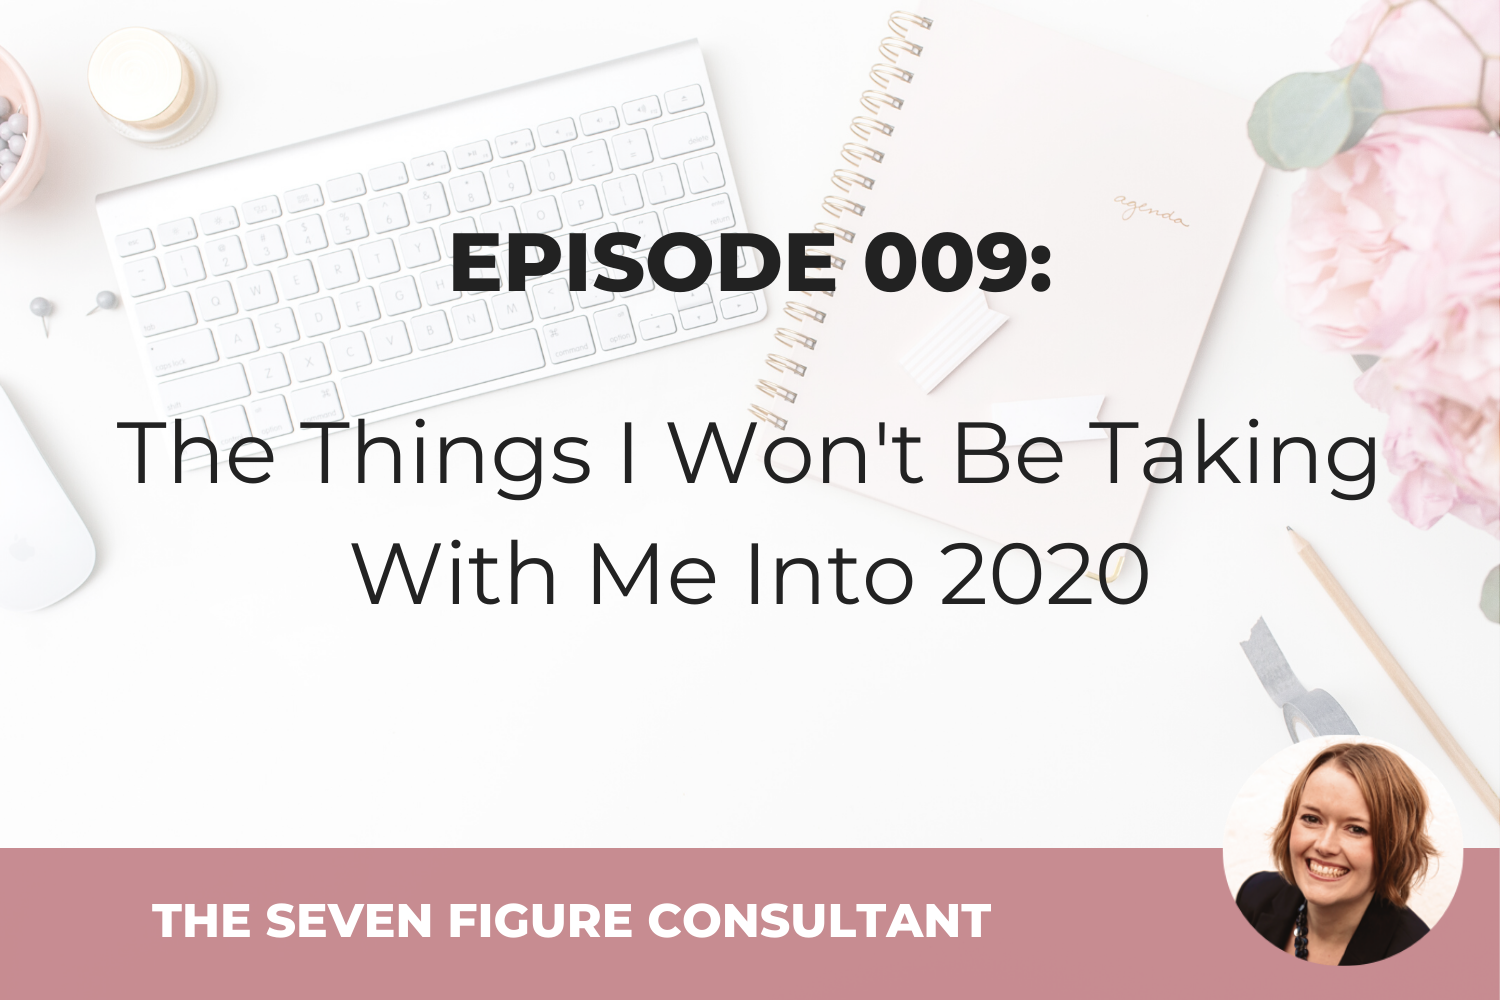 Episode 009: The Things I Won't Be Taking With Me Into 2020